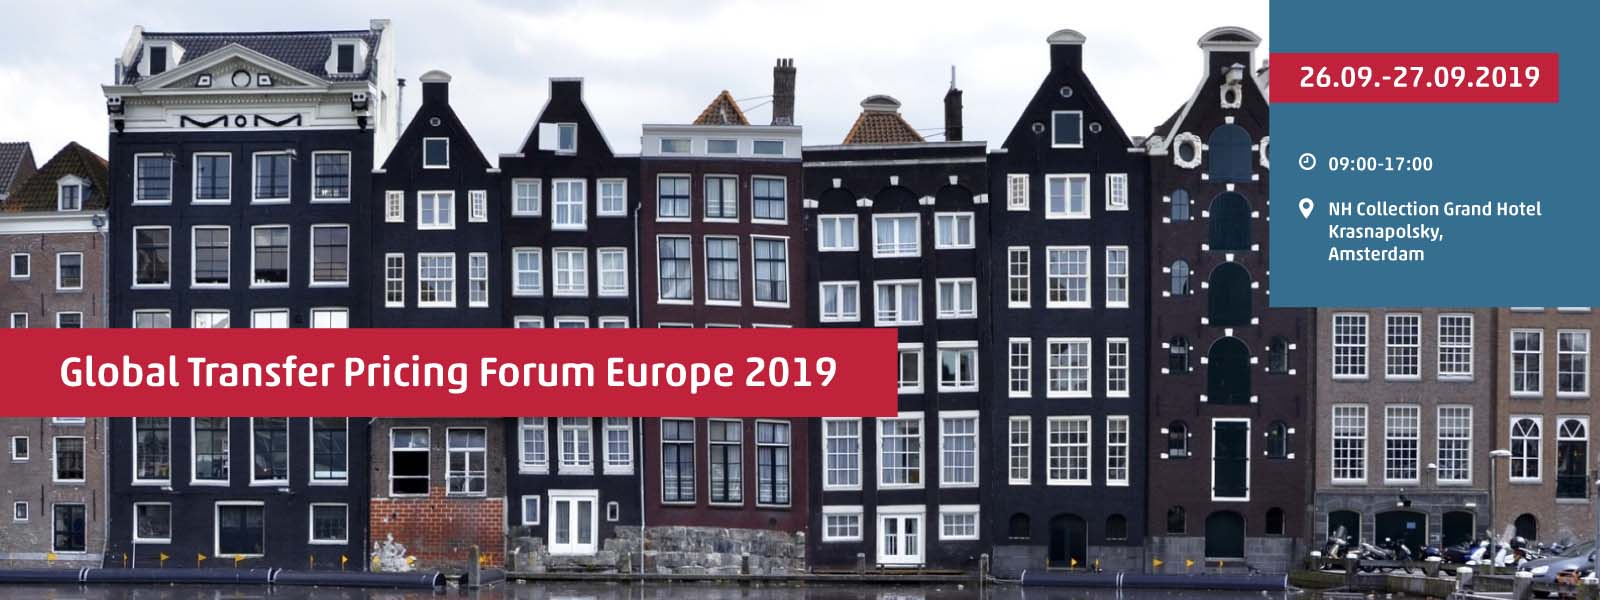 Global Transfer Pricing Forum Europe 2019